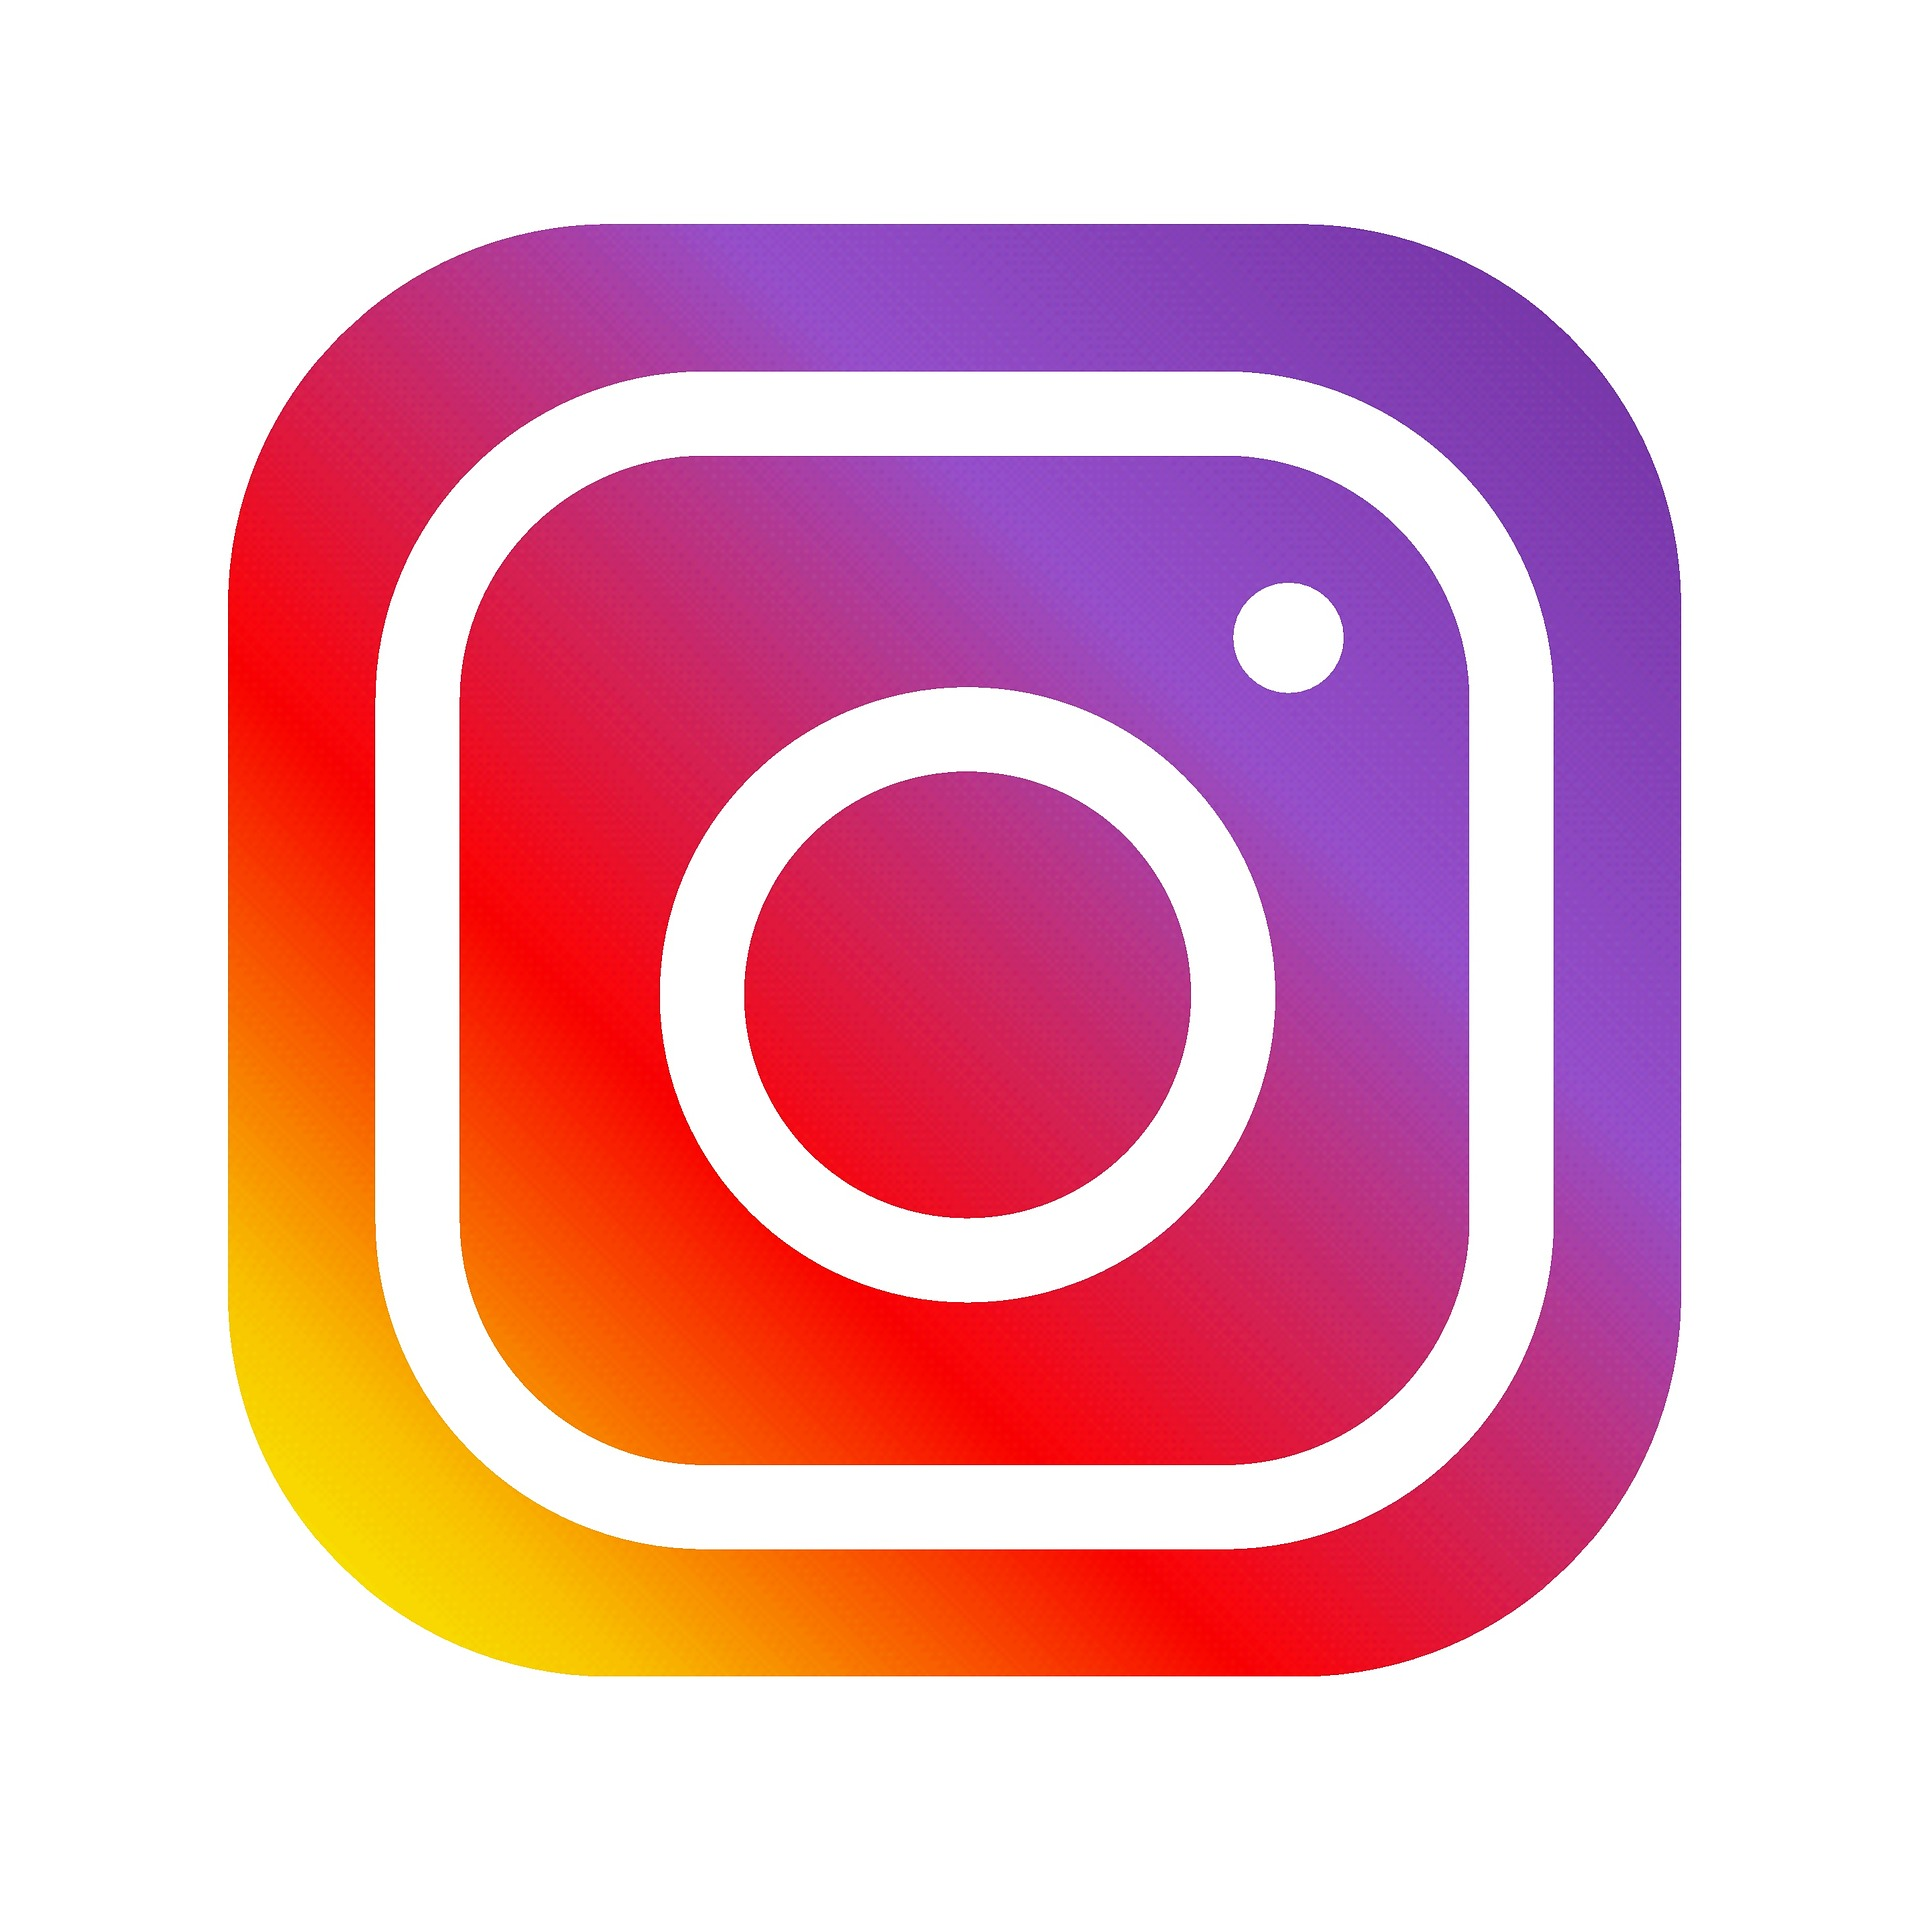 Instagram Logo for Team Mahout